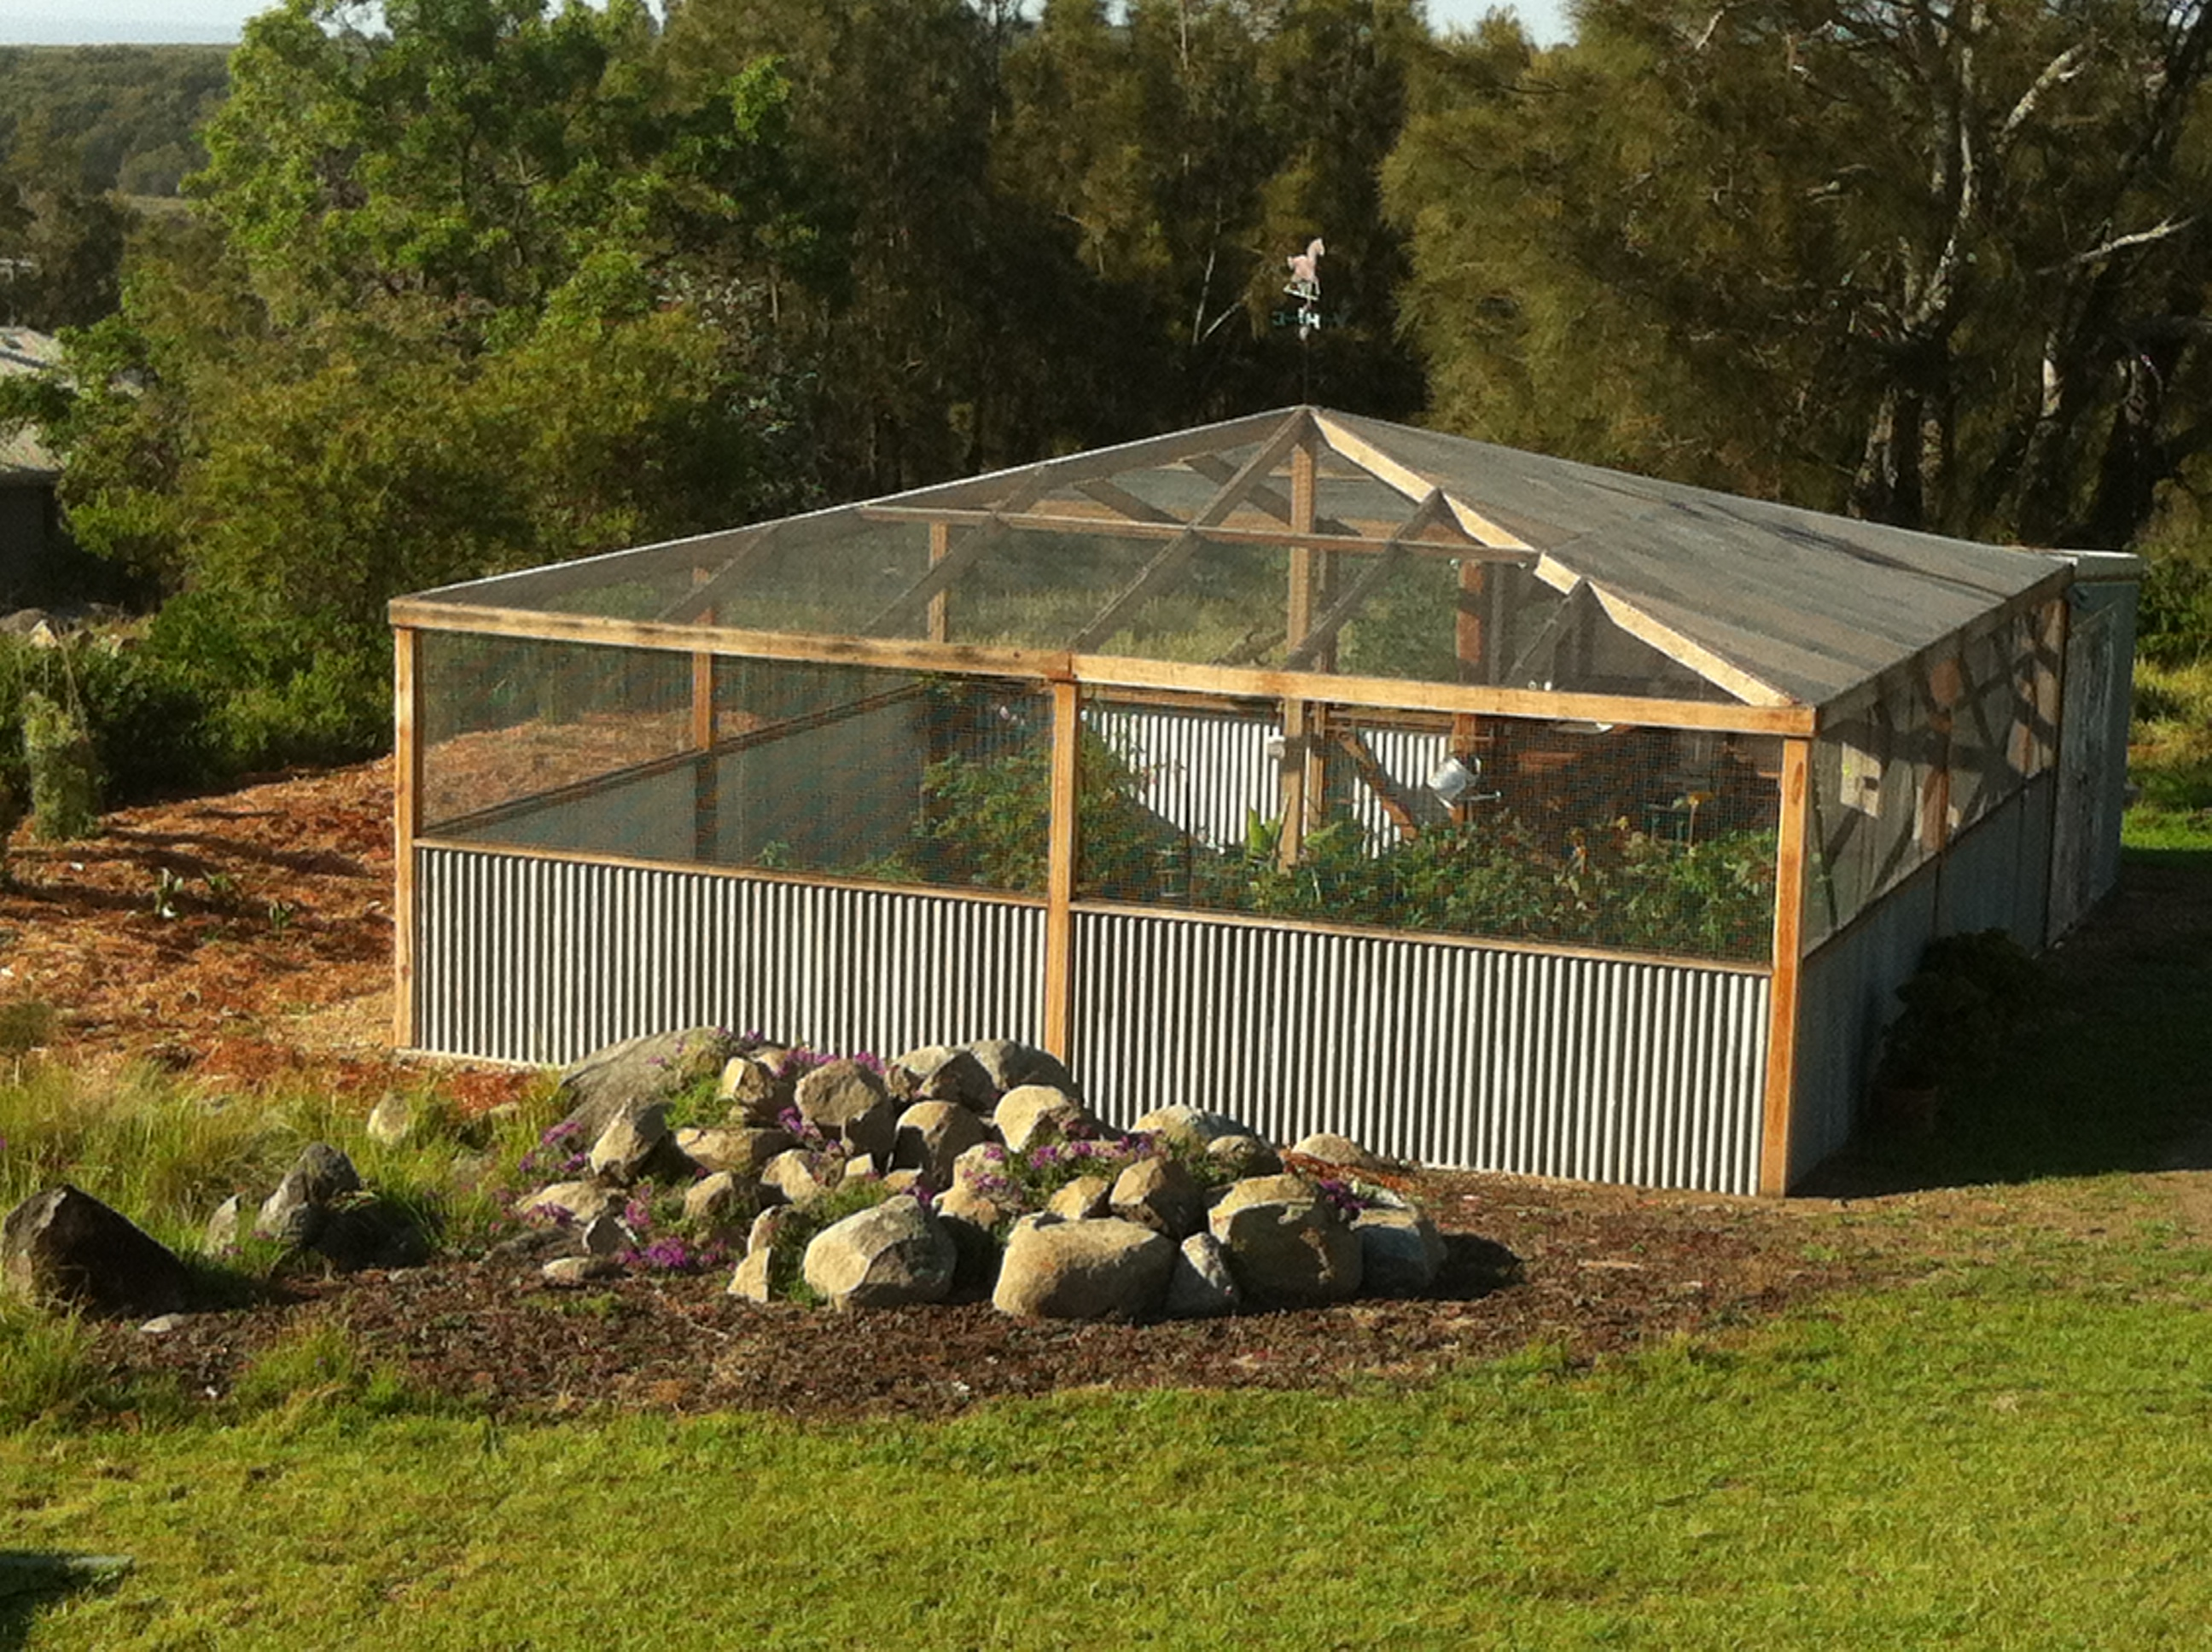 1000 images about veggie garden on pinterest vegetable garden garden fences and deer fence - Garden ideas to keep animals out ...